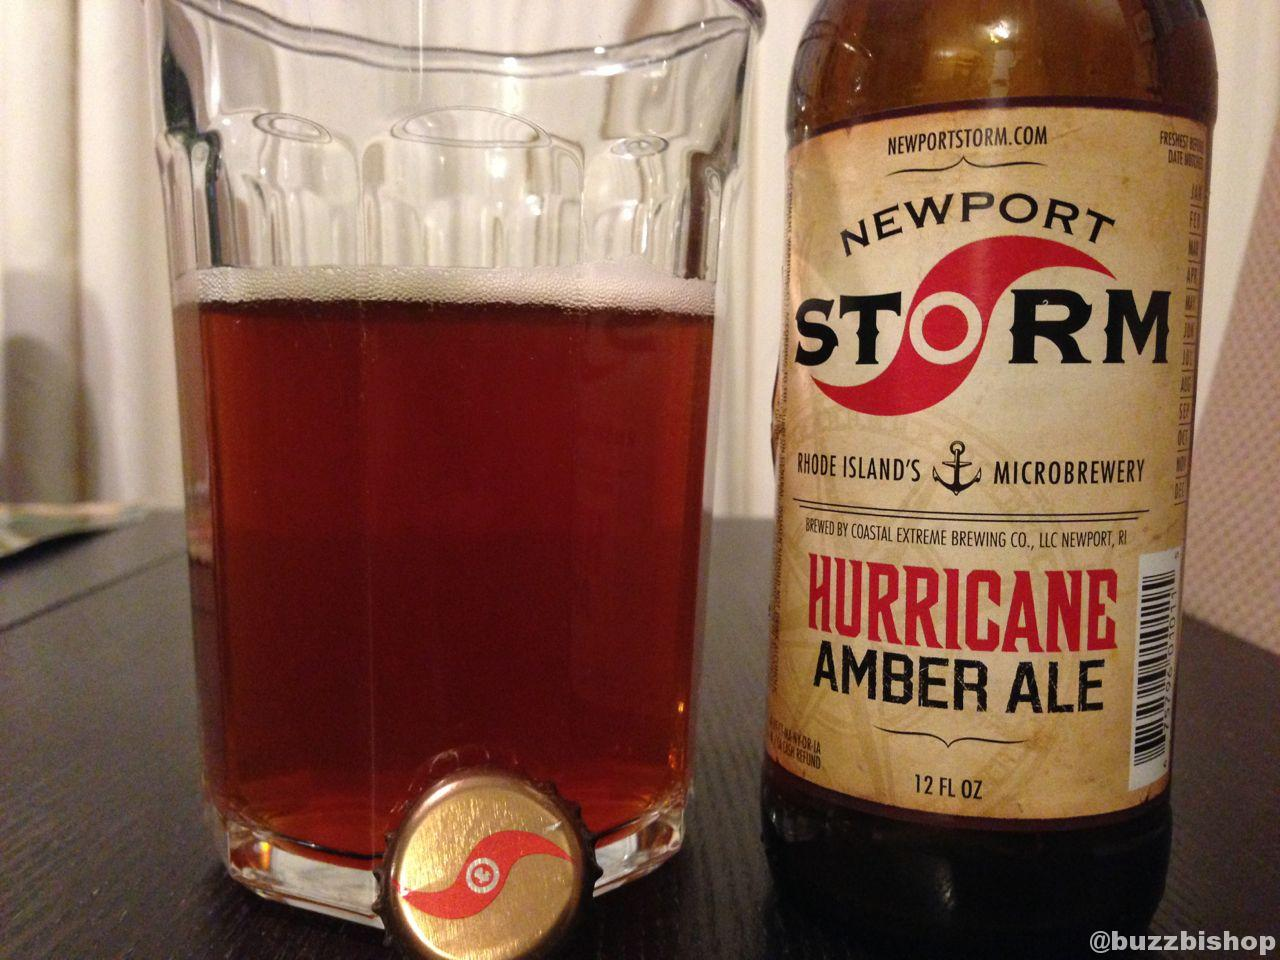 Craft Beer Advent Calendar: Newport Storm Hurricane Amber Ale